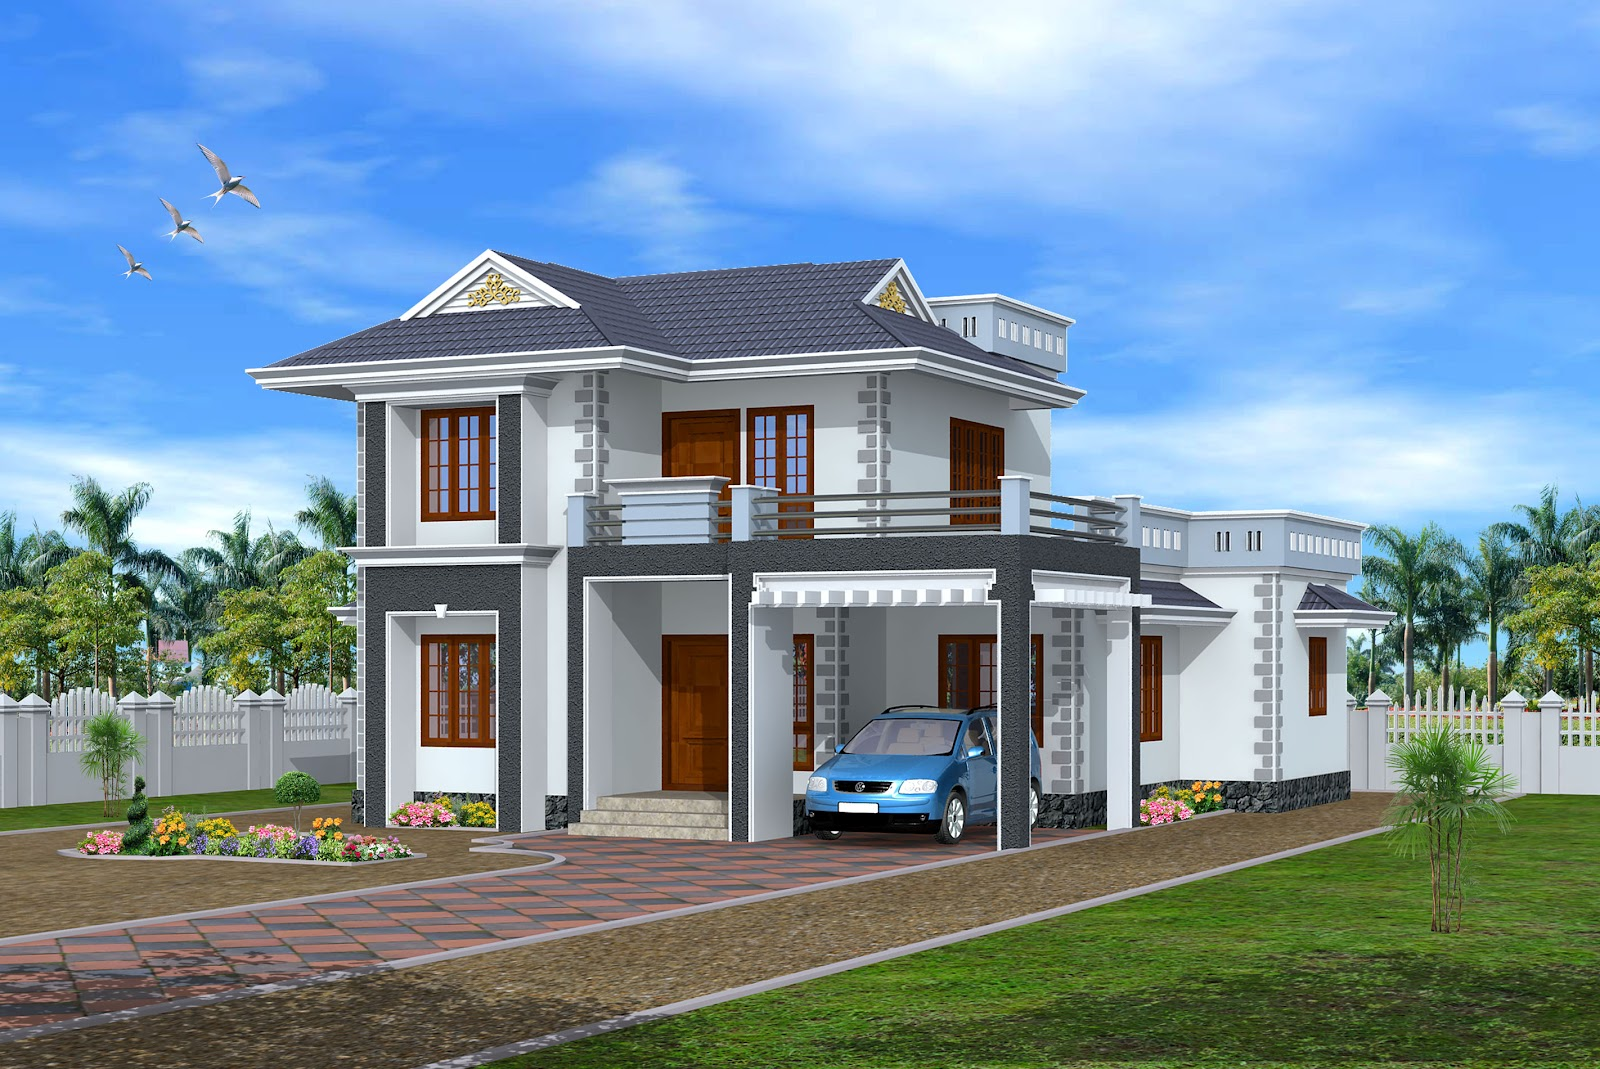 New home designs latest modern homes exterior designs views for Home designs 3d images